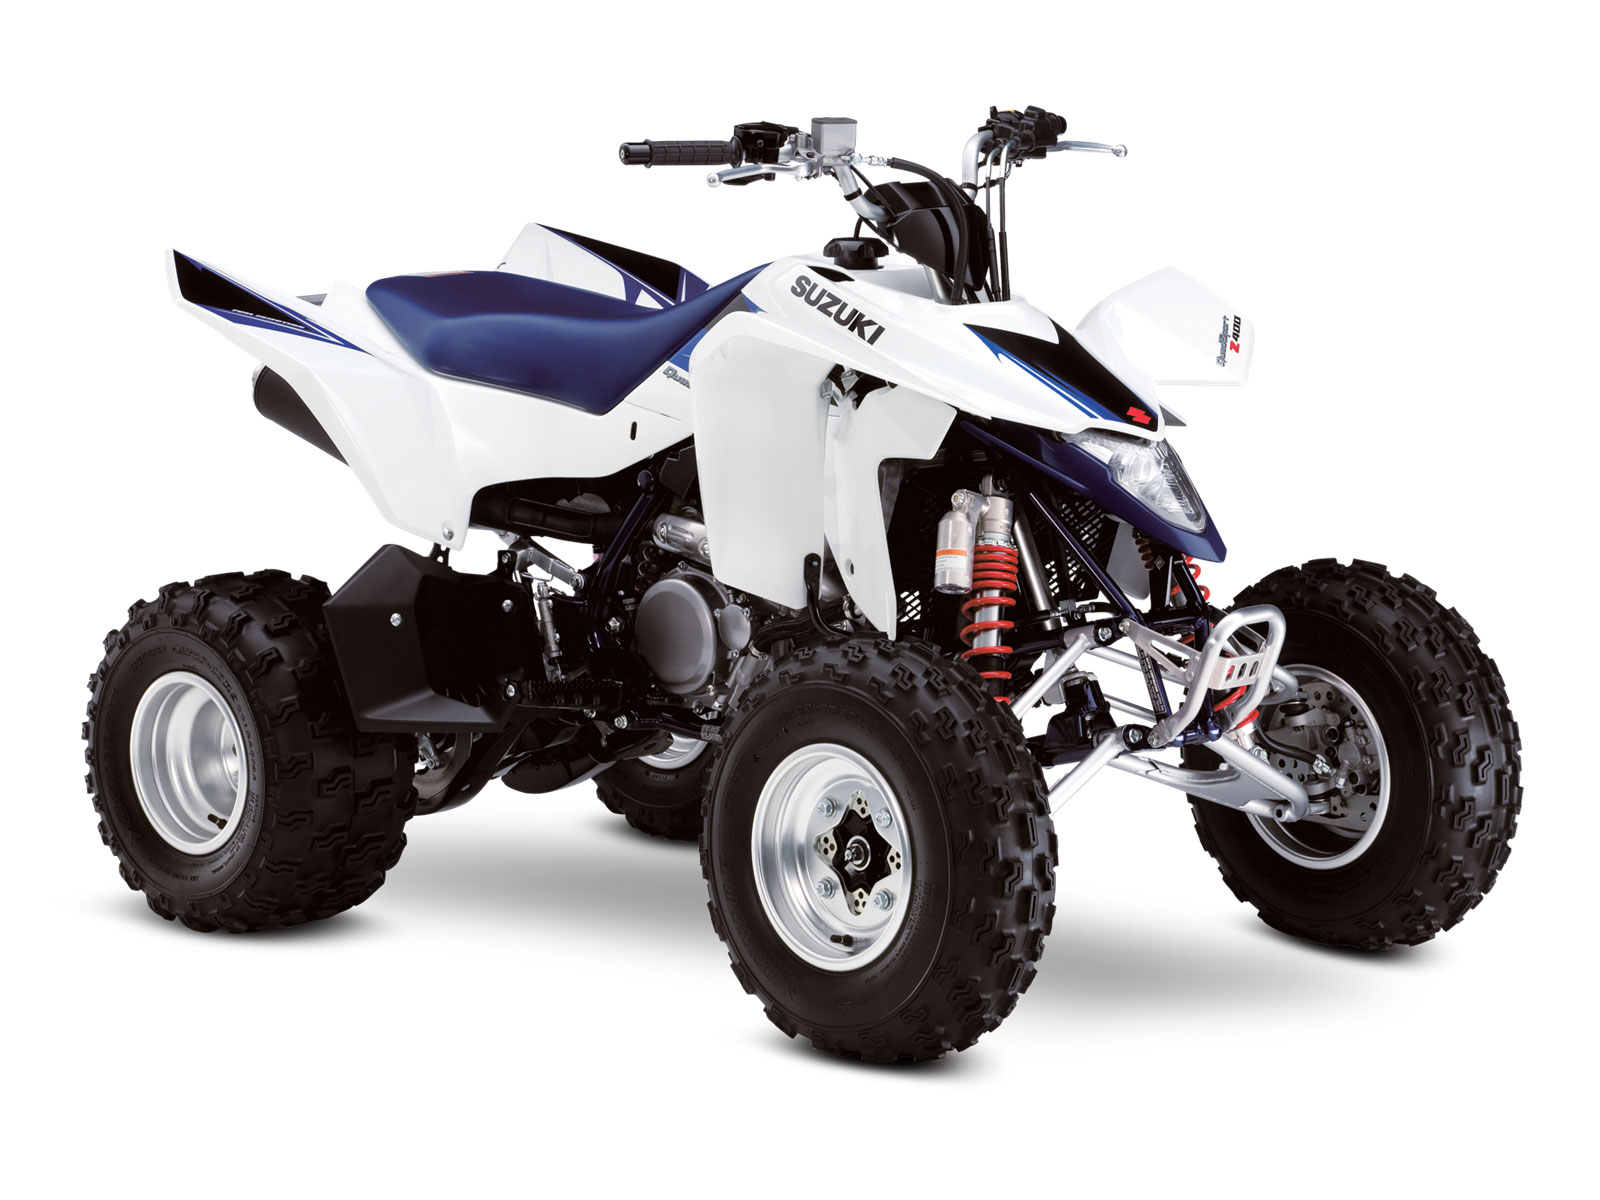 2012 Suzuki QuadSport Z400 Review